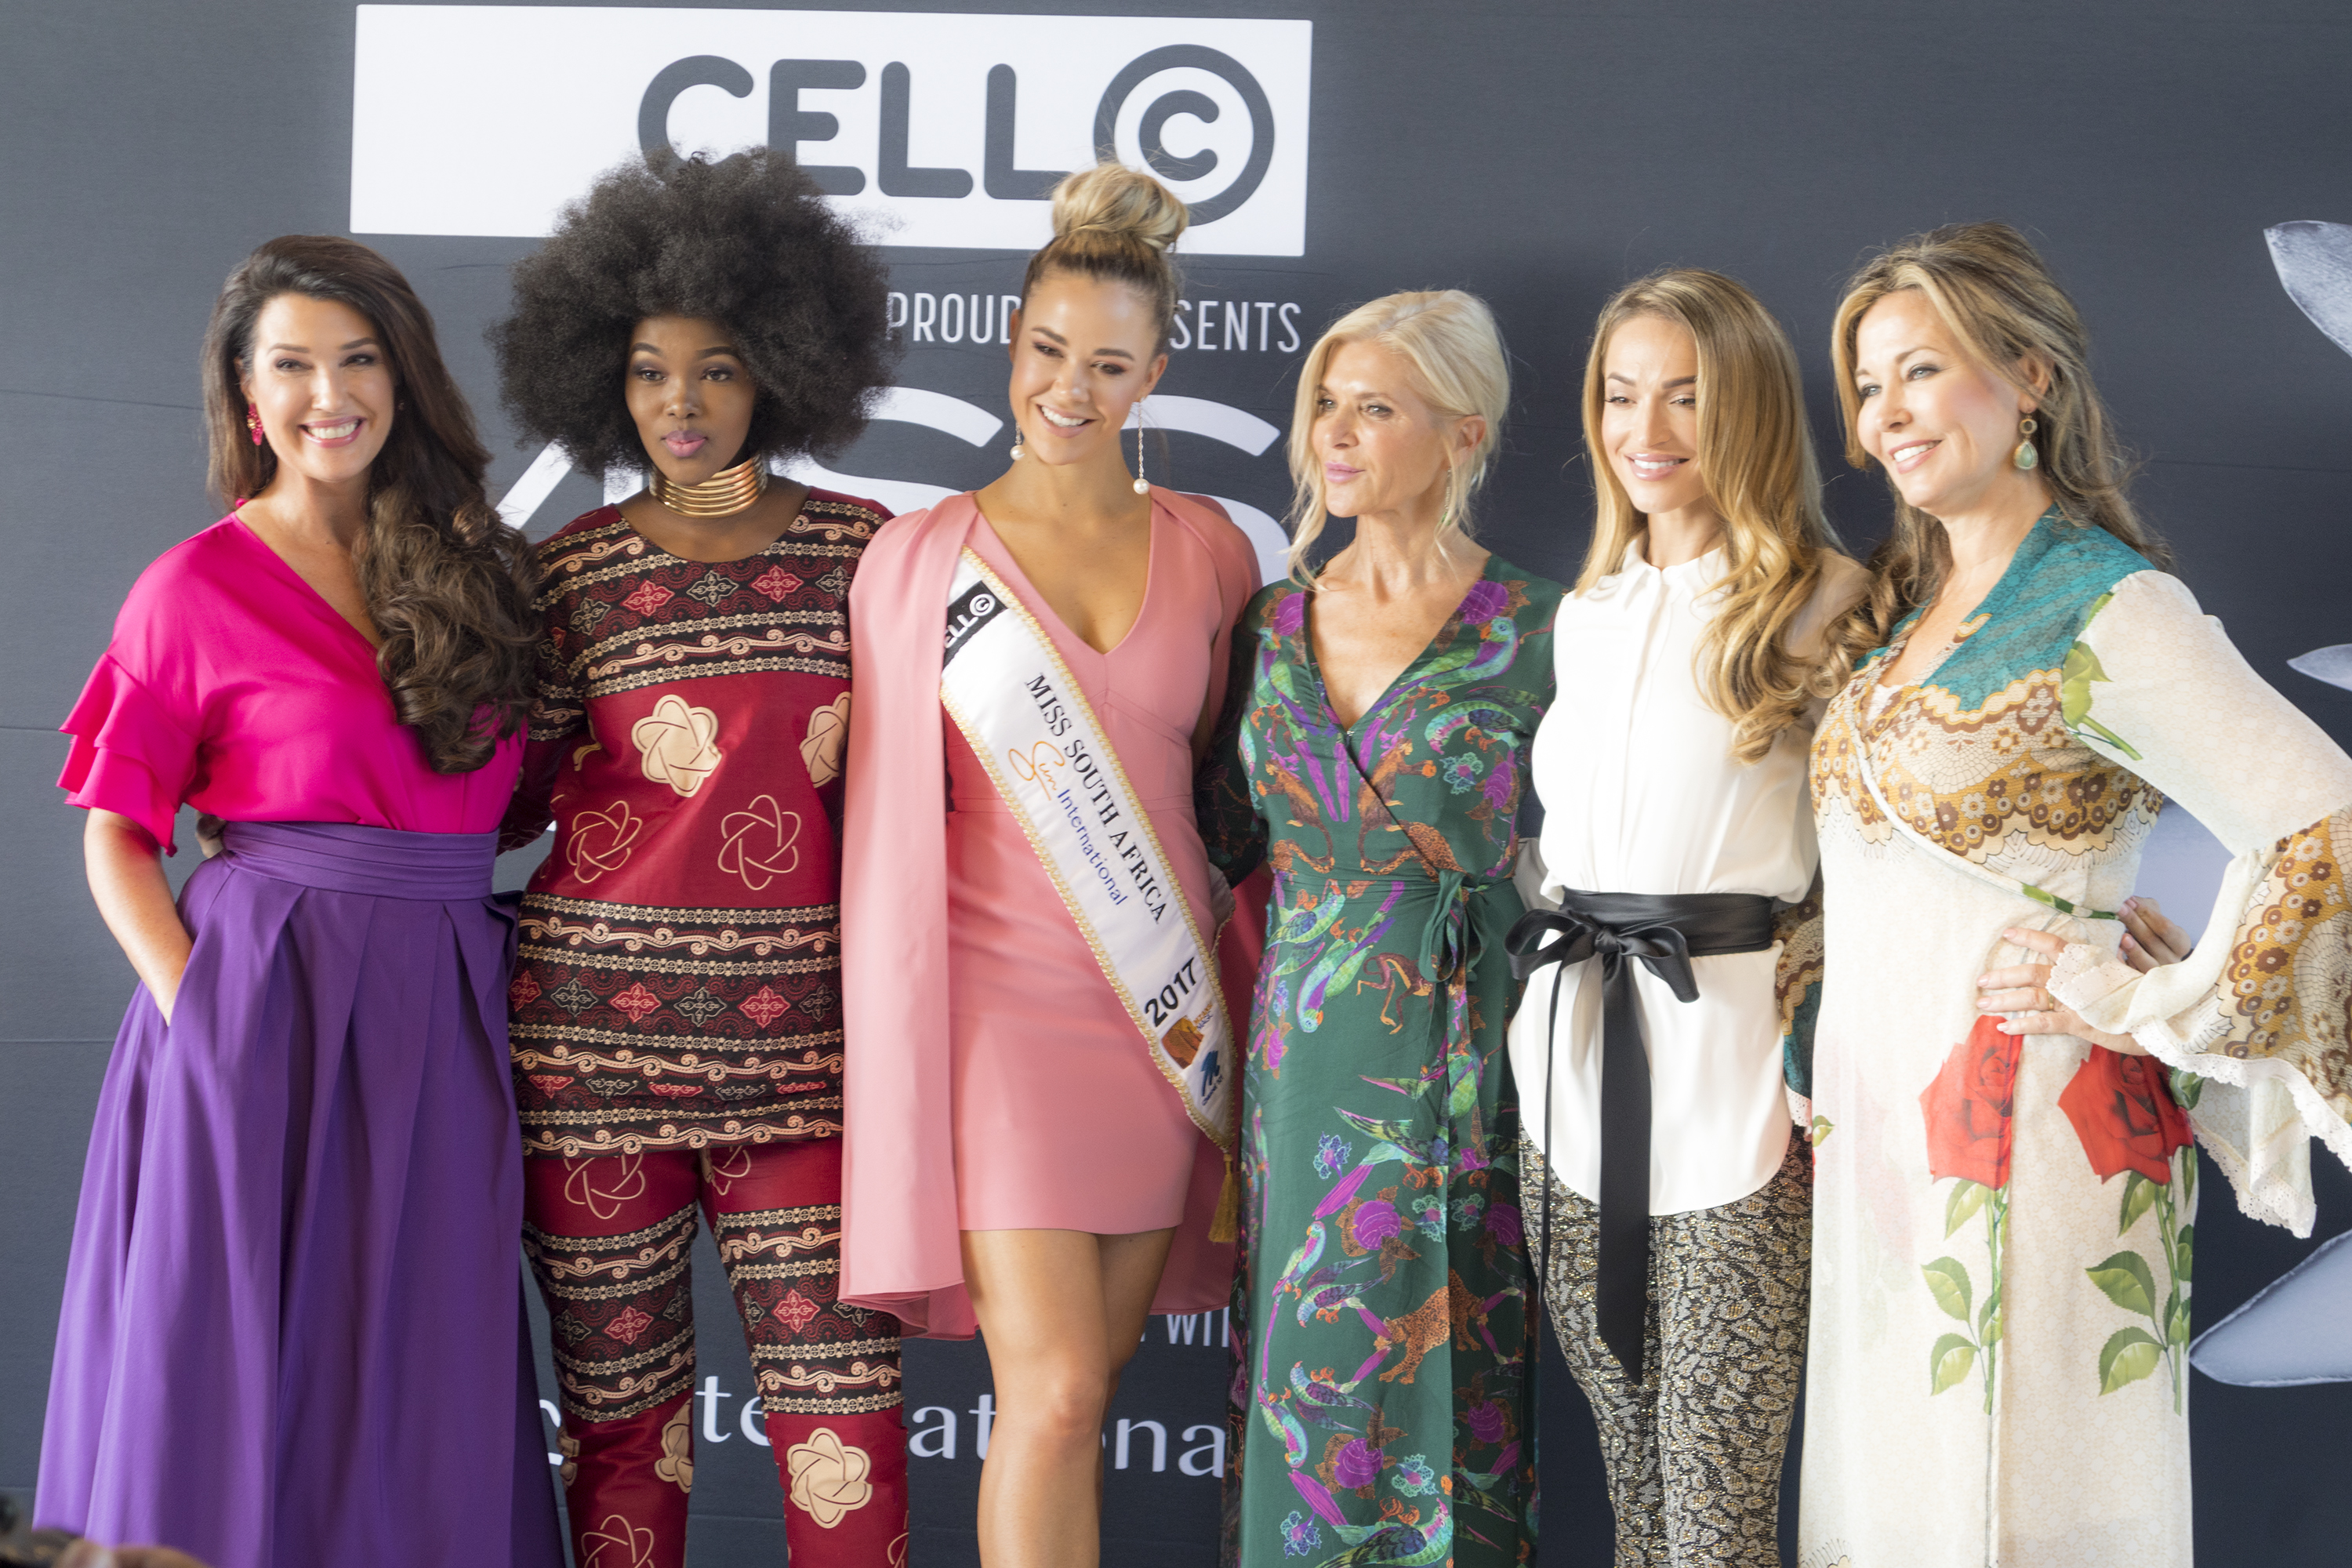 Previous Miss SA Pageant Winners